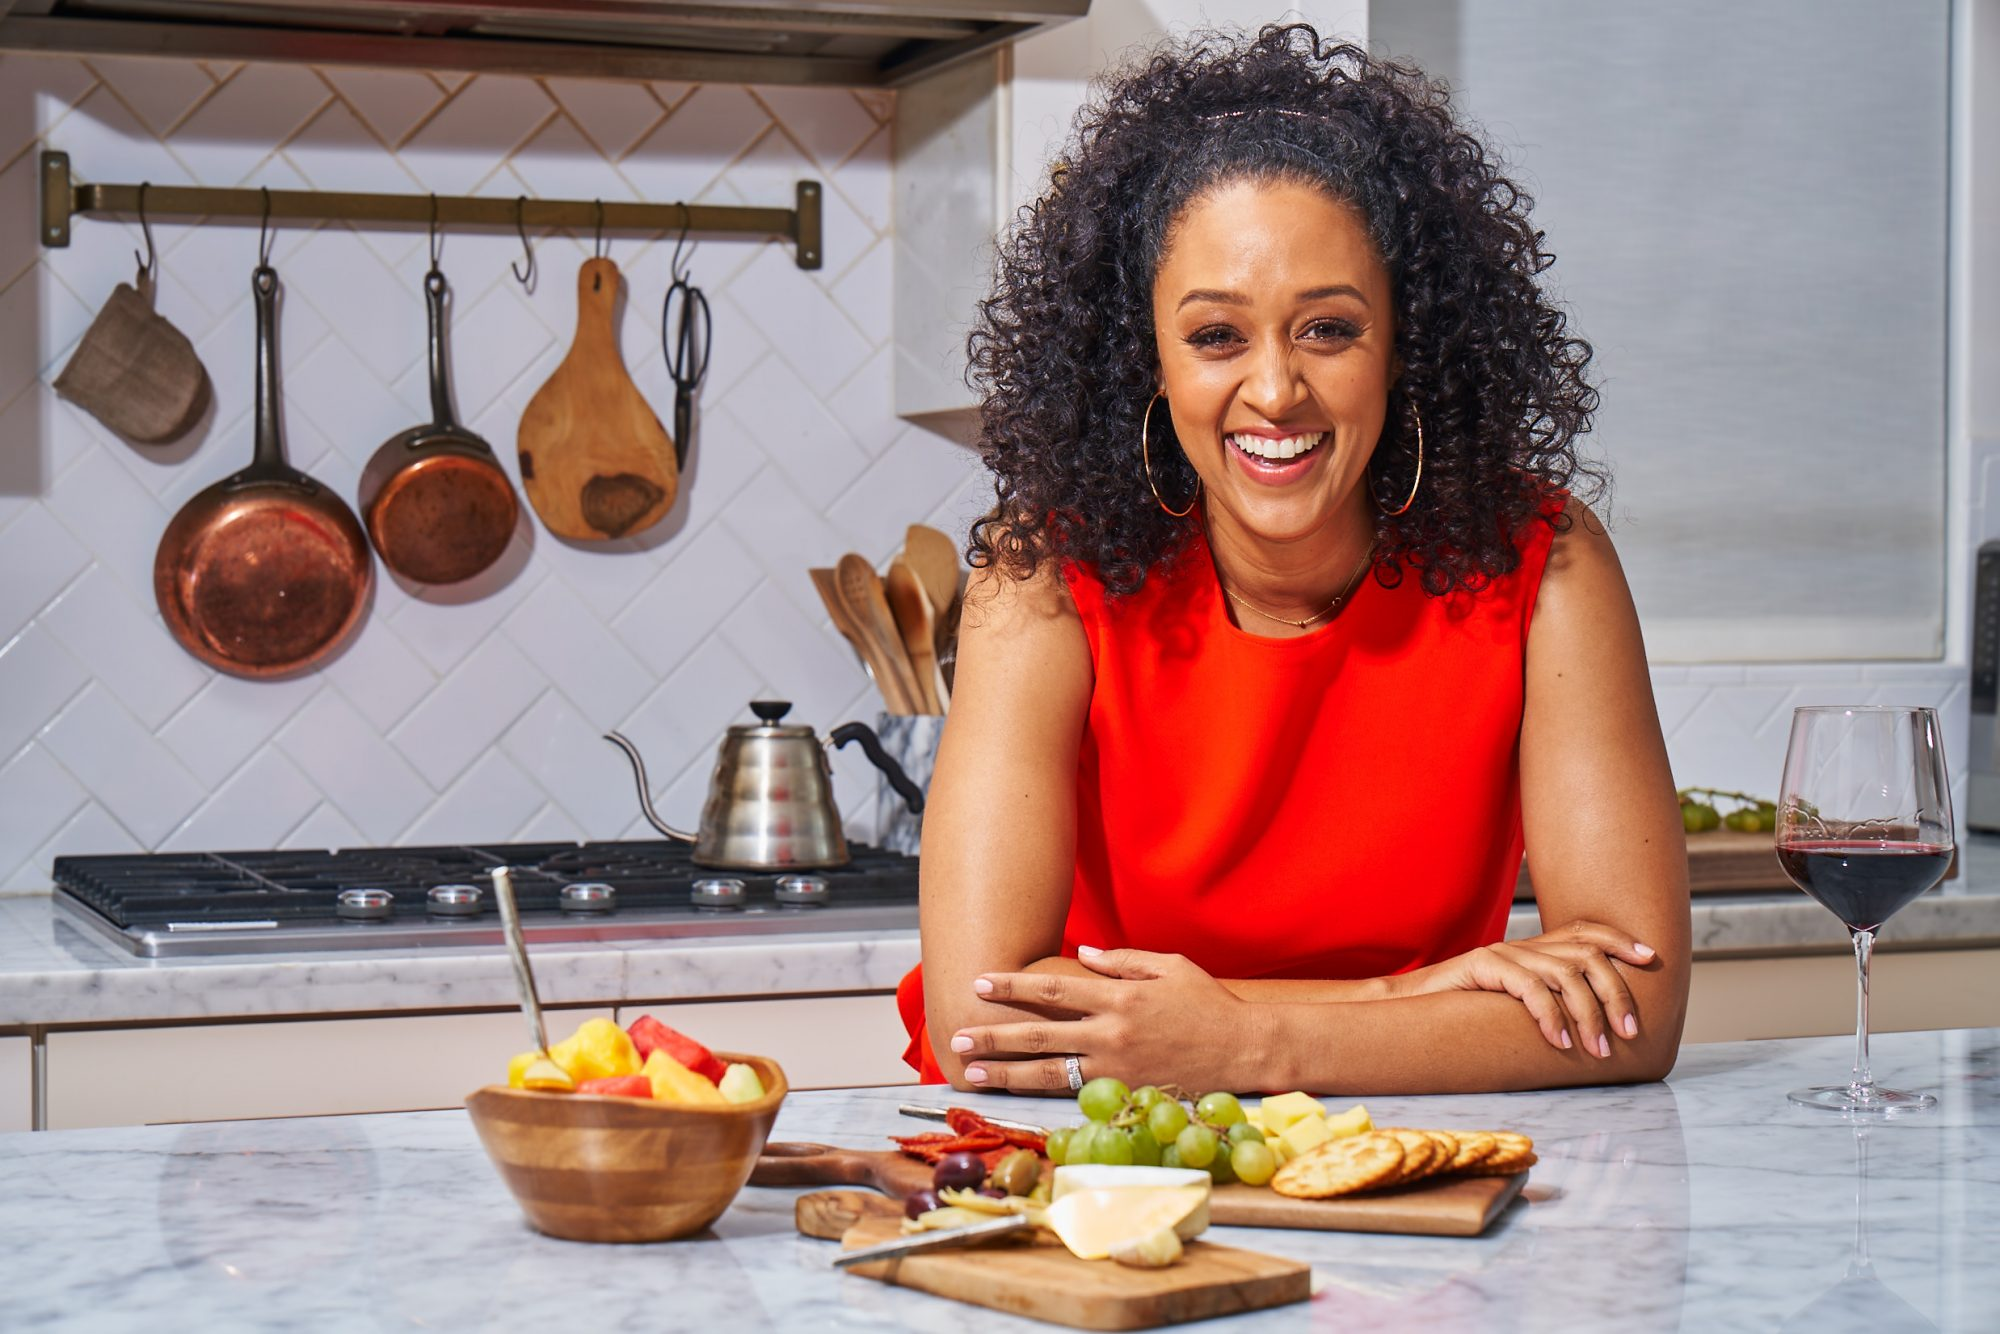 Tia Mowry in the kitchen beside charcuterie board on the island